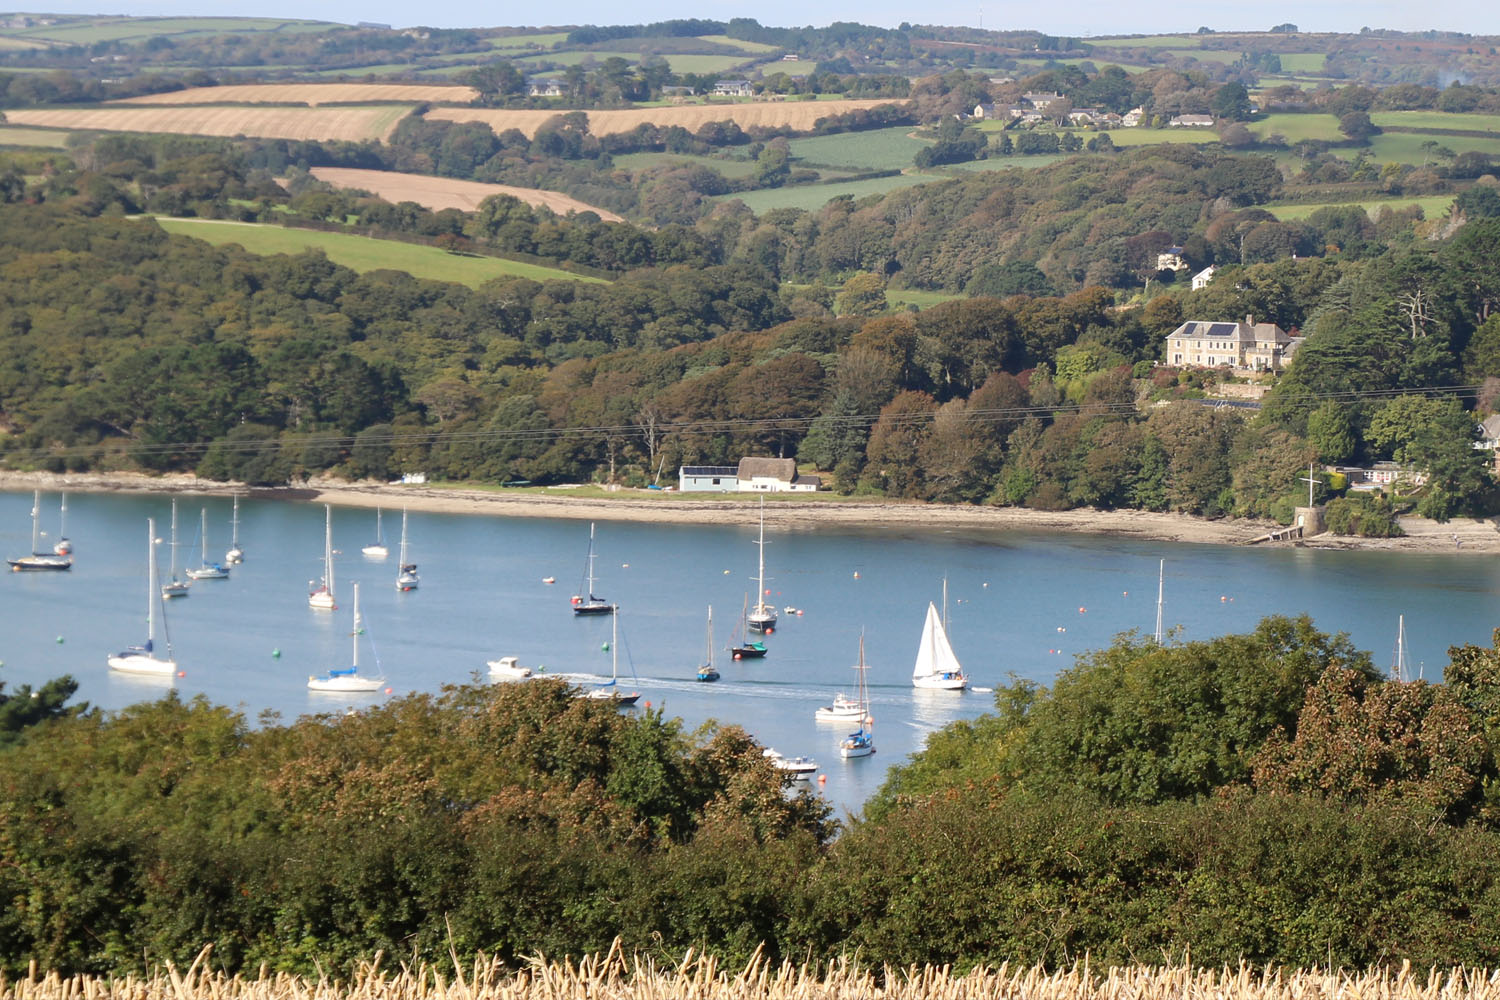 View from the hill above Helford